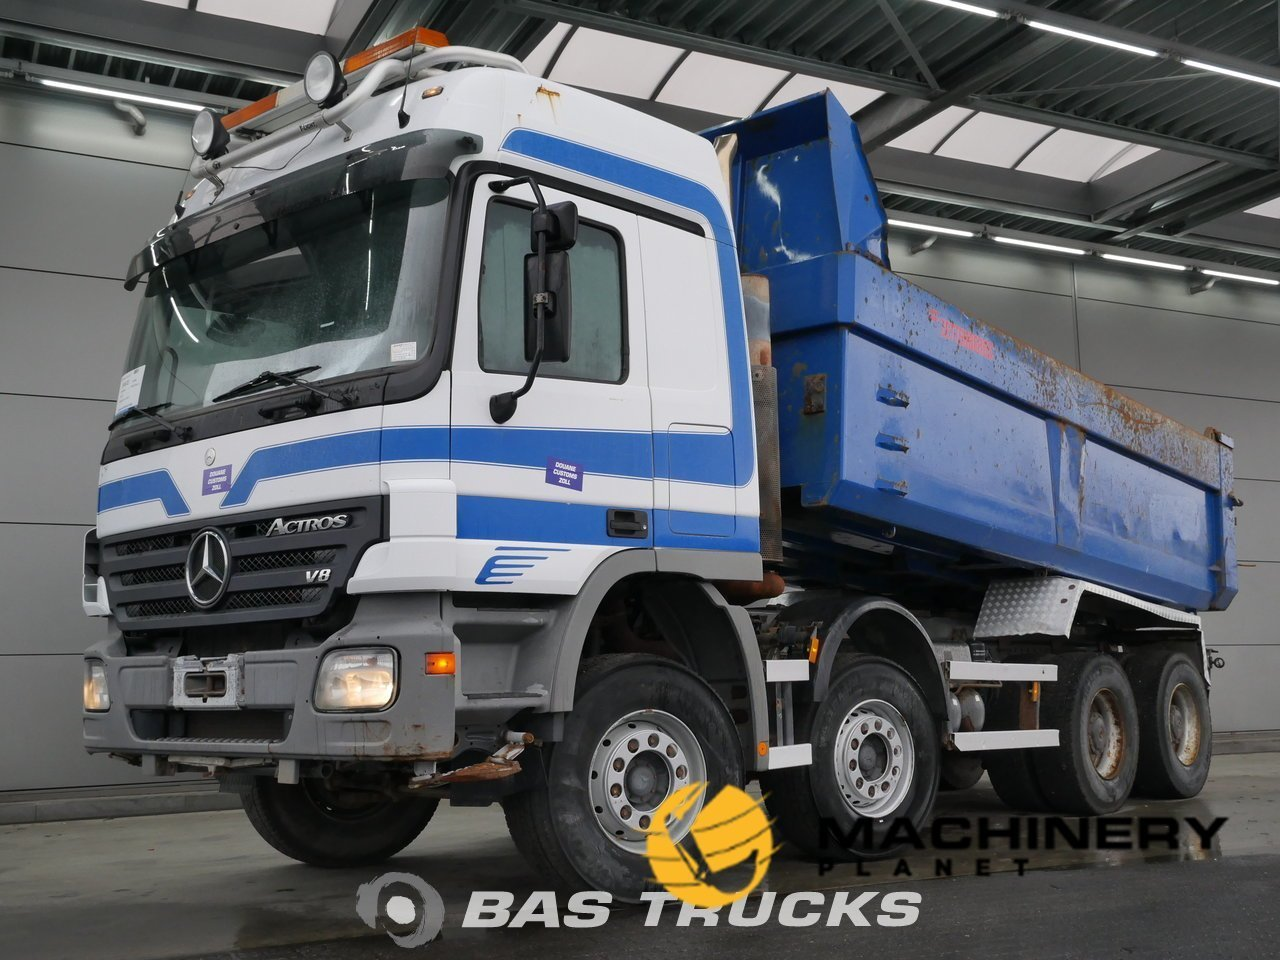 Used-Truck-Mercedes-Actros-4150-K-8X4-2006_67660_1-1554198663452_5ca330876e5d6-1.jpg